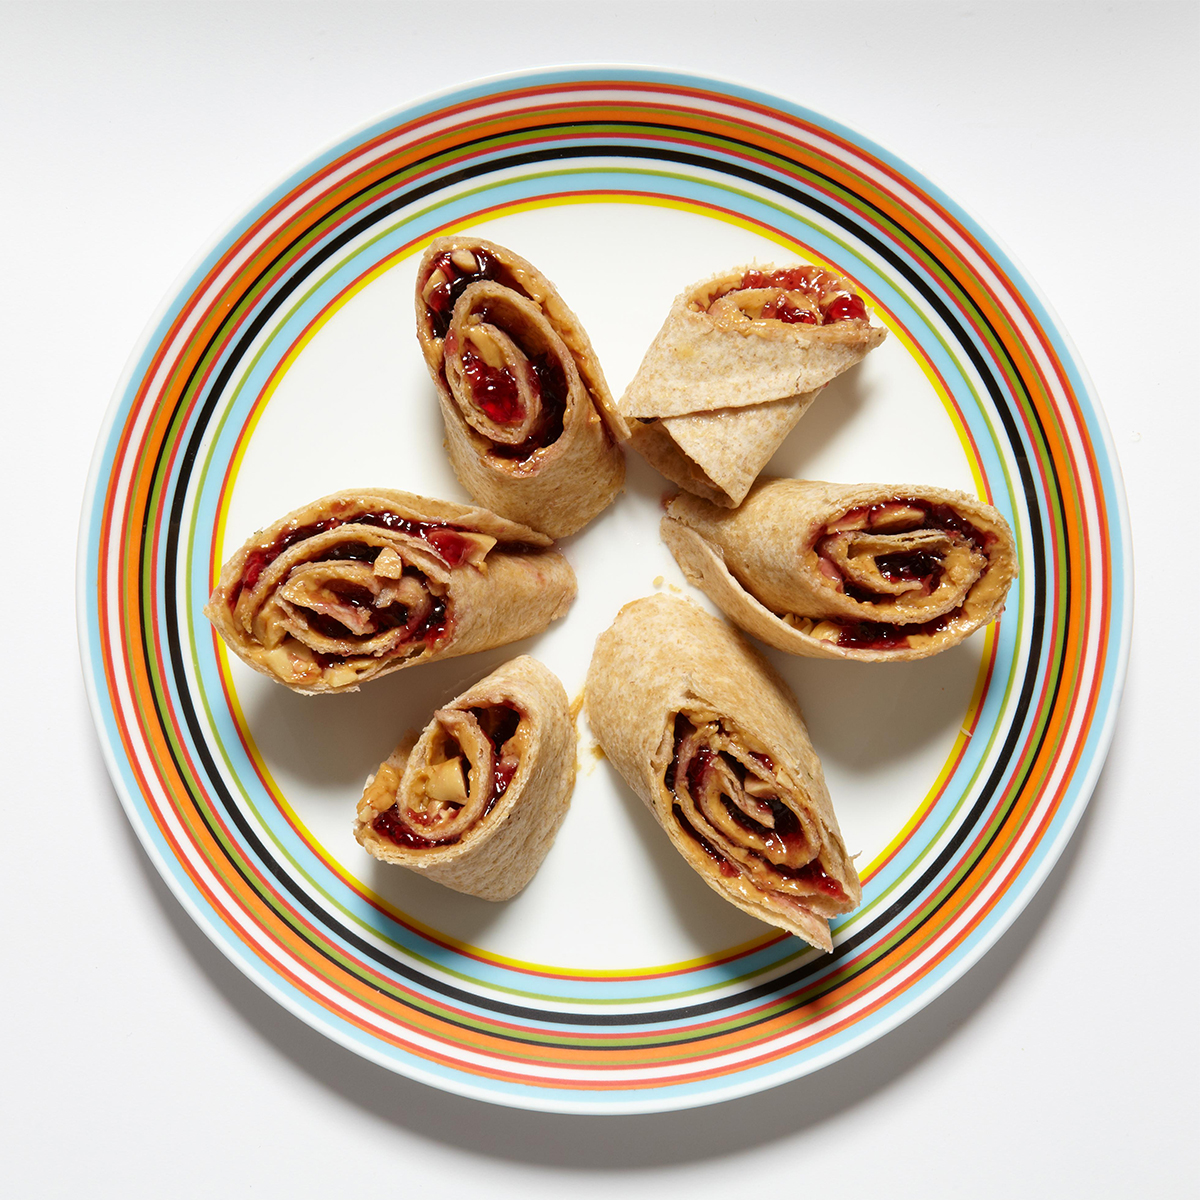 peanut butter and jelly wrap